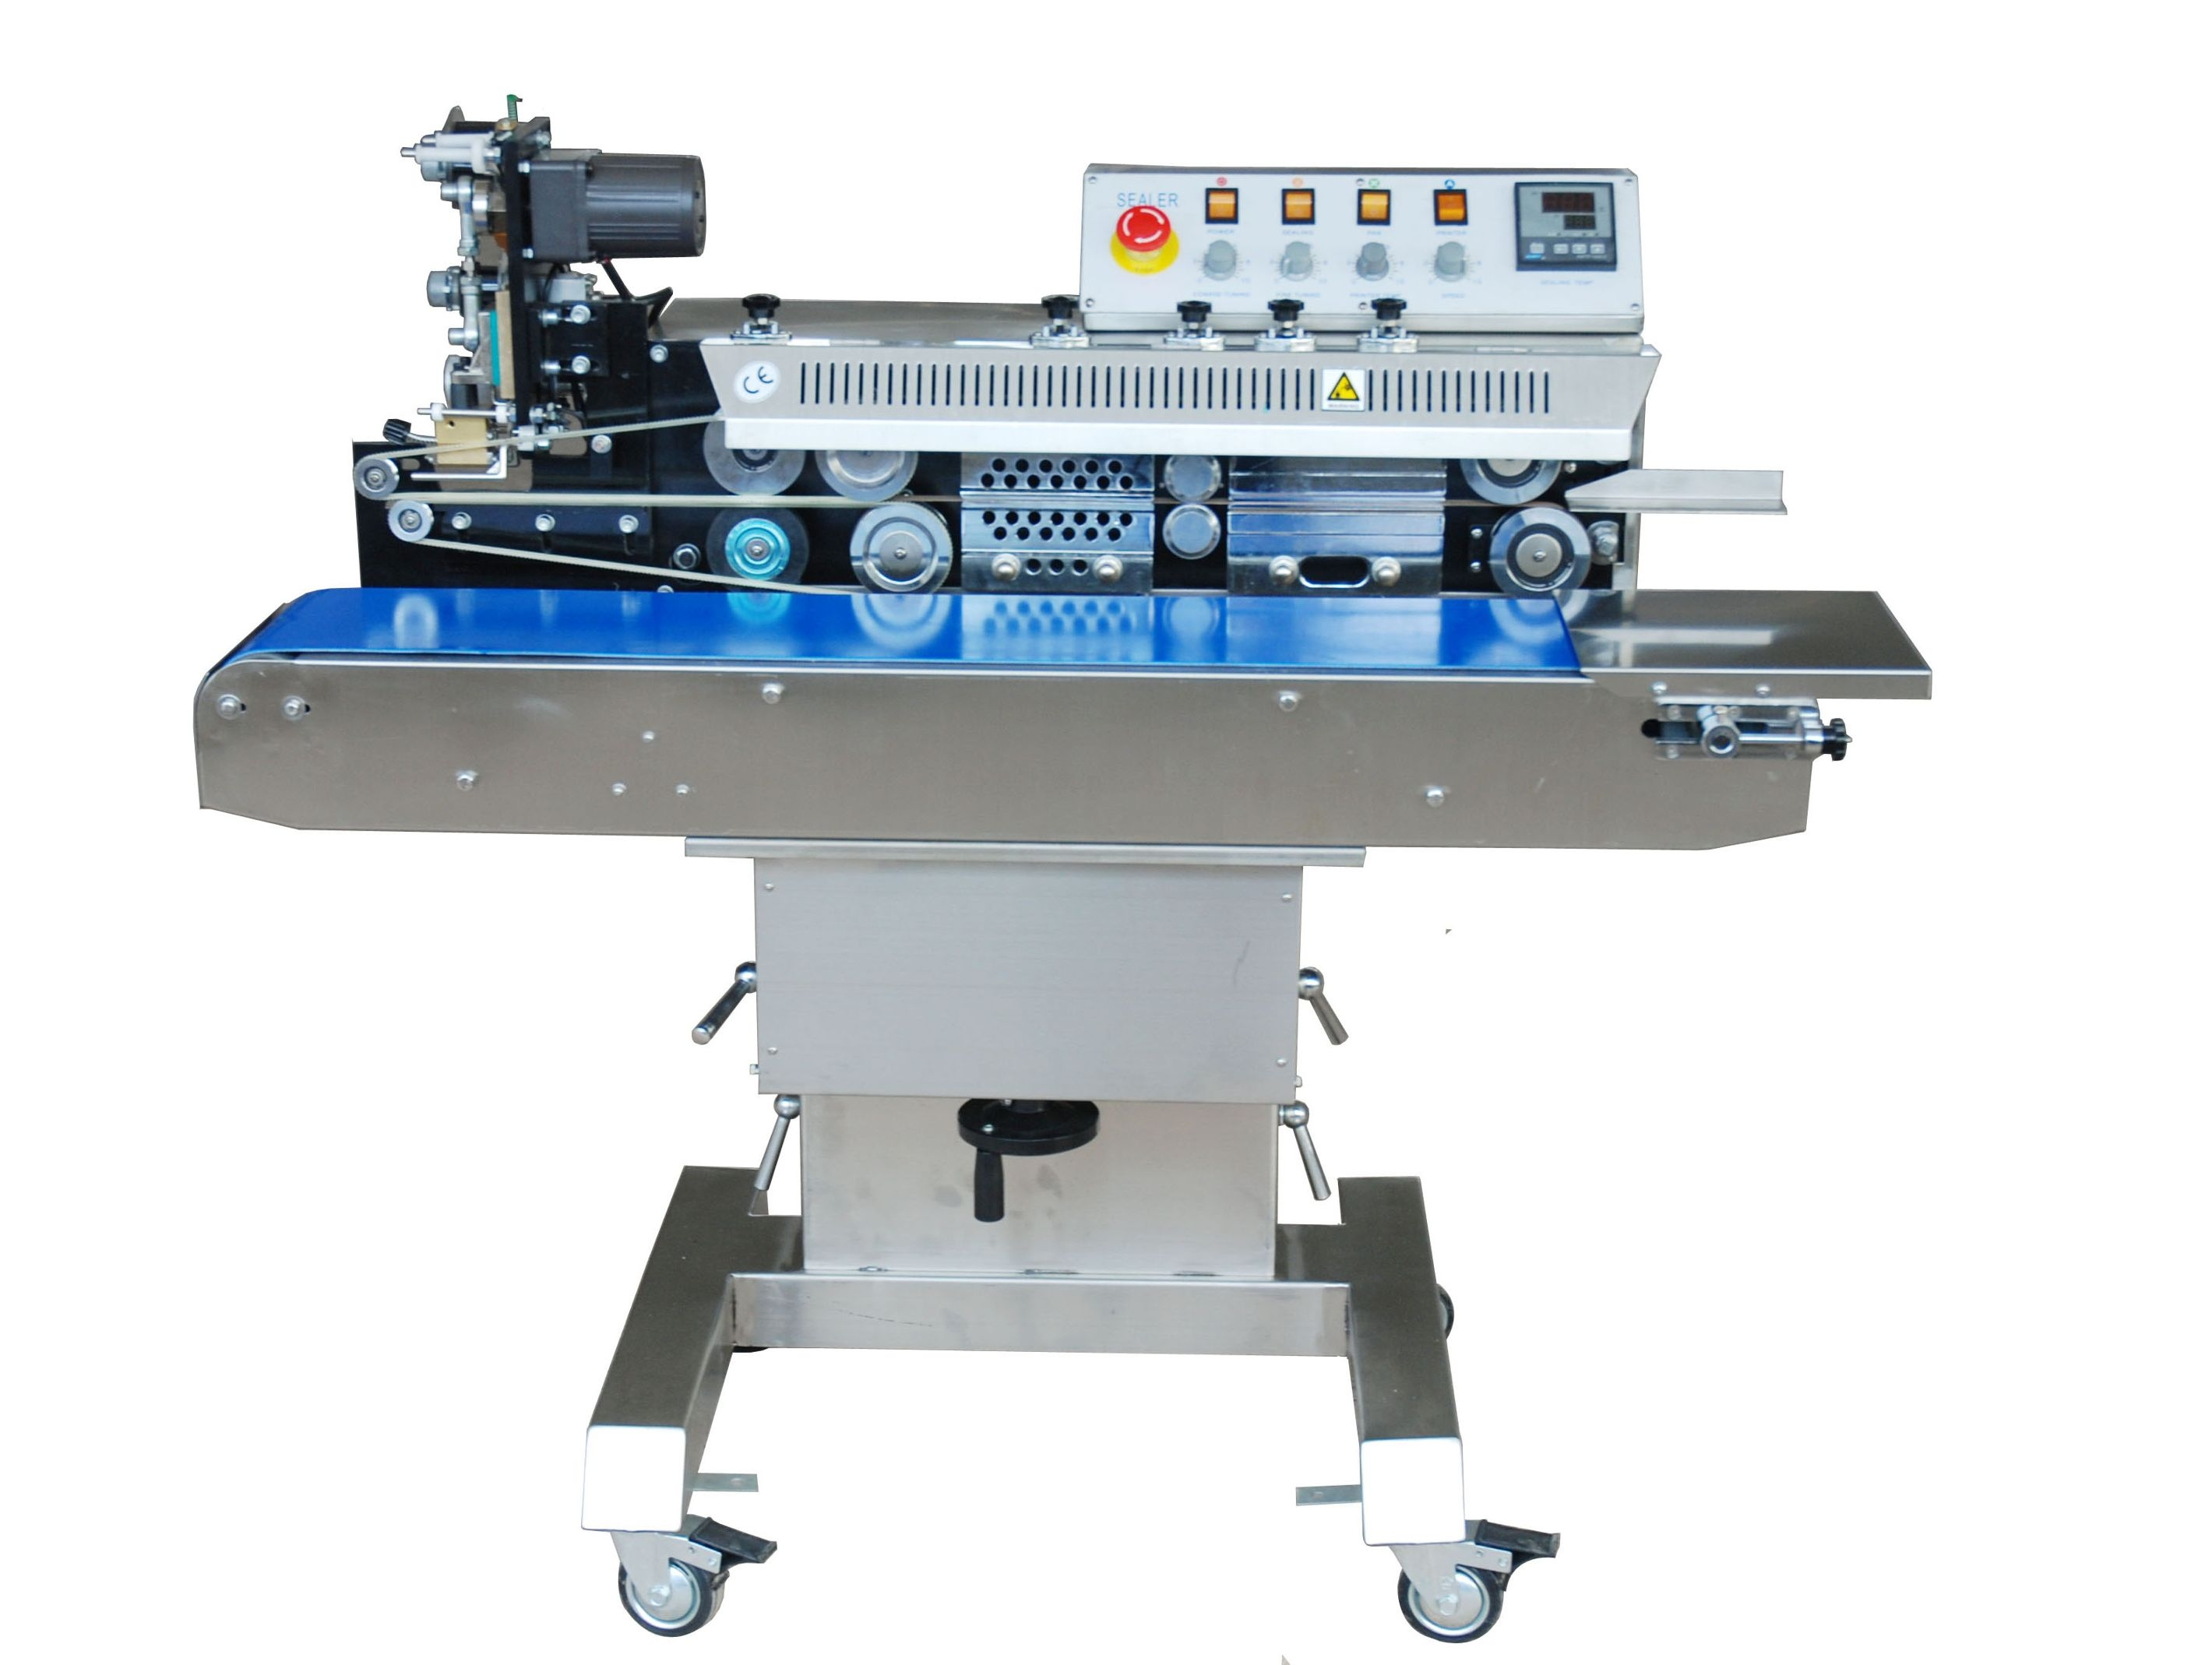 SealerSales Free-Standing Horizontal Color Ribbon Printing Continuous Band Sealer (FRS-1120W) Image 1